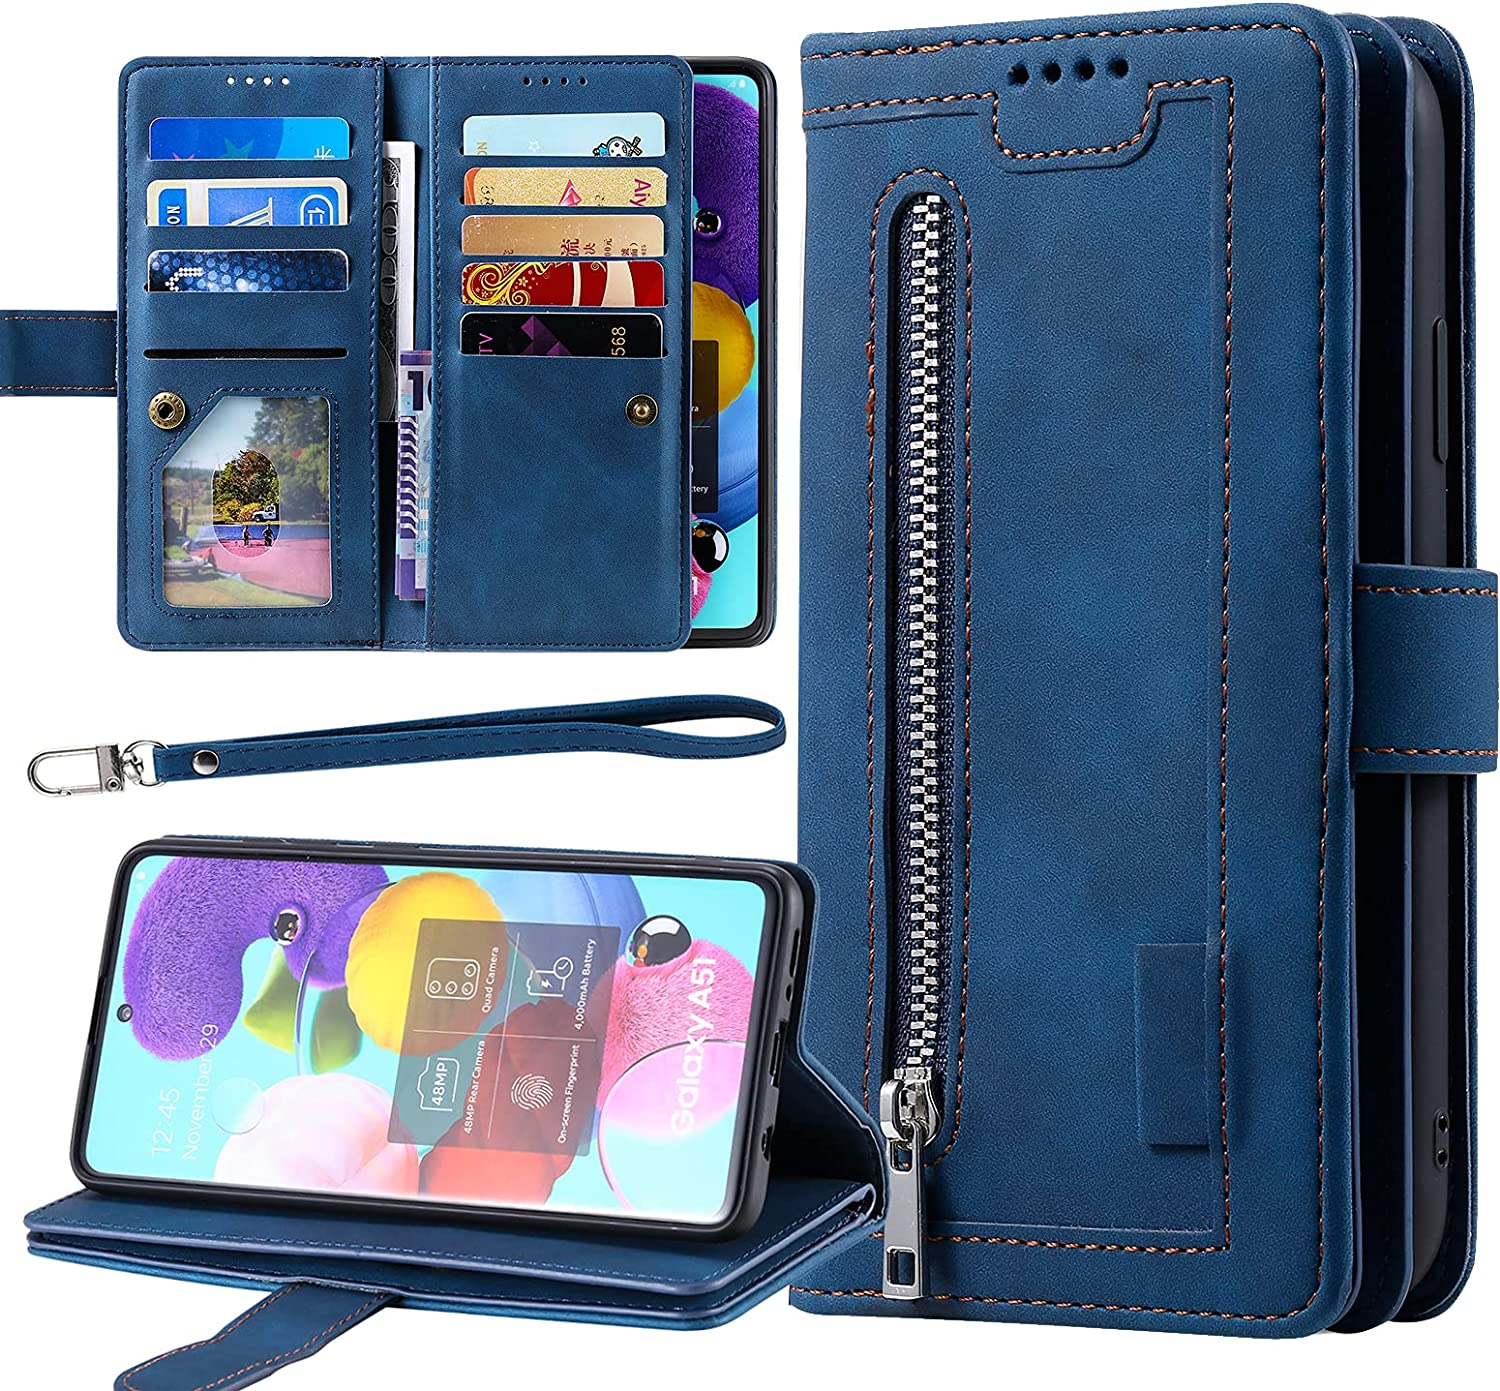 Galaxy A50 Wallet Phone Case, Harsel 9 Card Holder Premium PU Leather Wallet Women Purse Folio Flip Folding Cover Protective Shell with Lanyard Strap Wristlet and Zipper Pocket (Navy Blue)